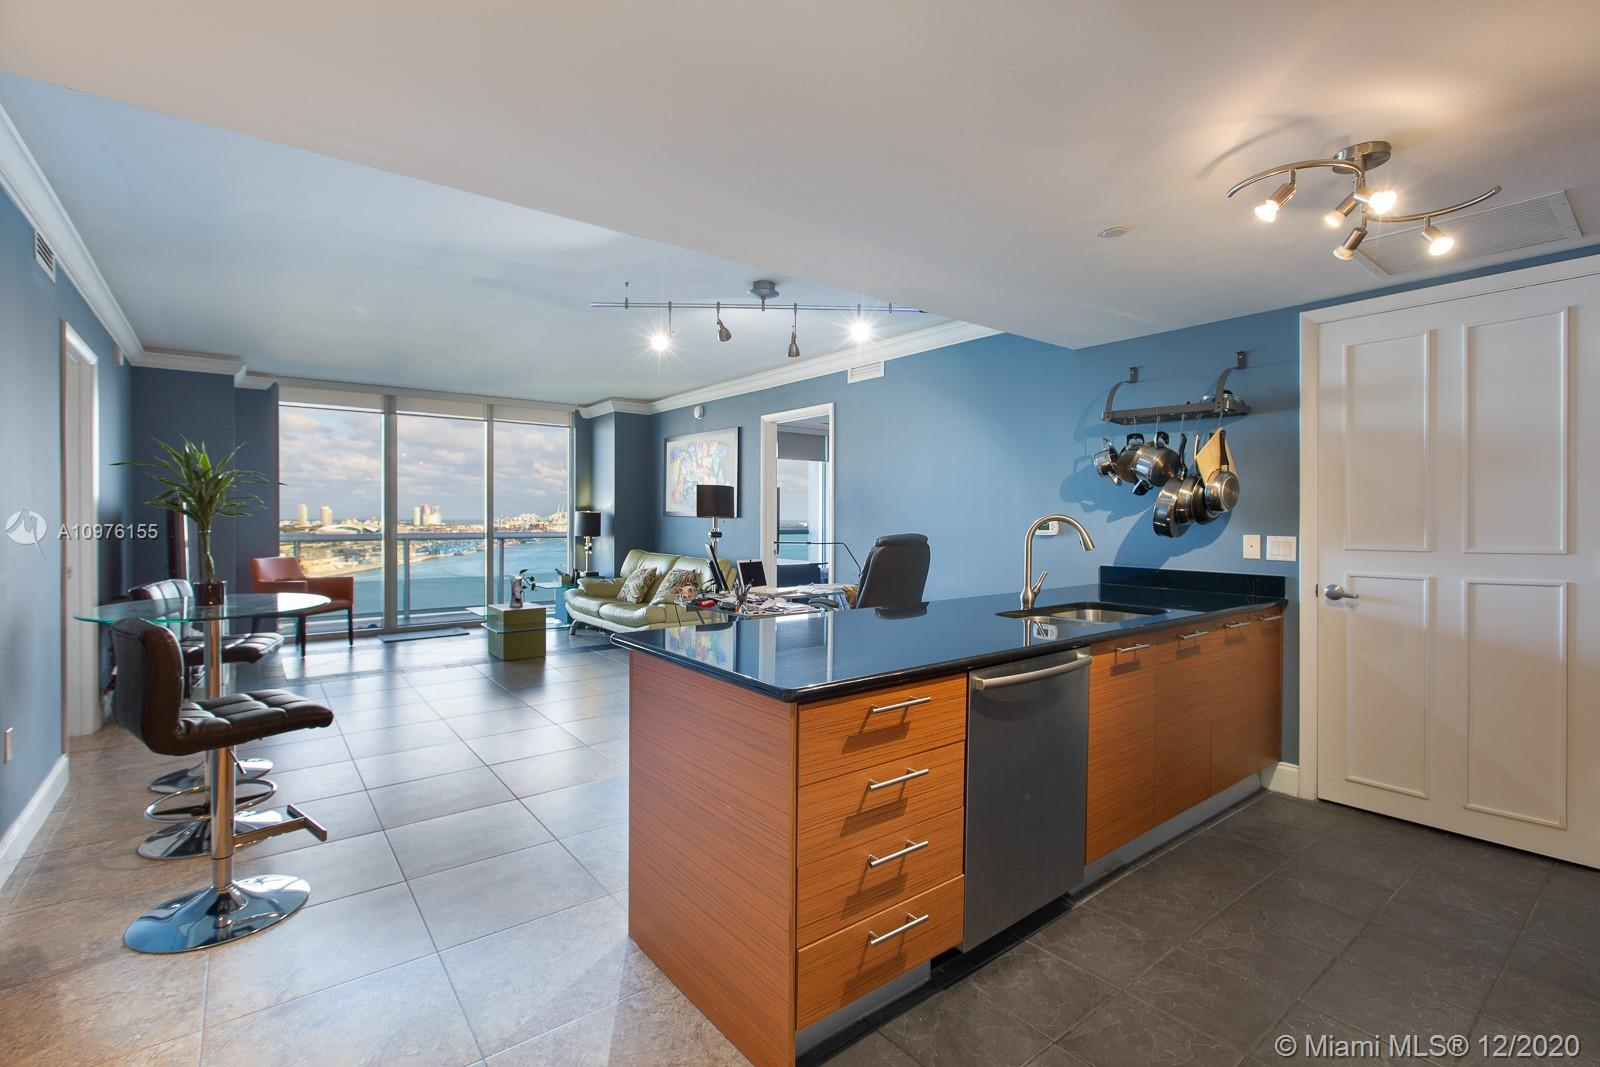 Photo of 50 BISCAYNE CONDO Apt 2306 that clicks through to the property detail page